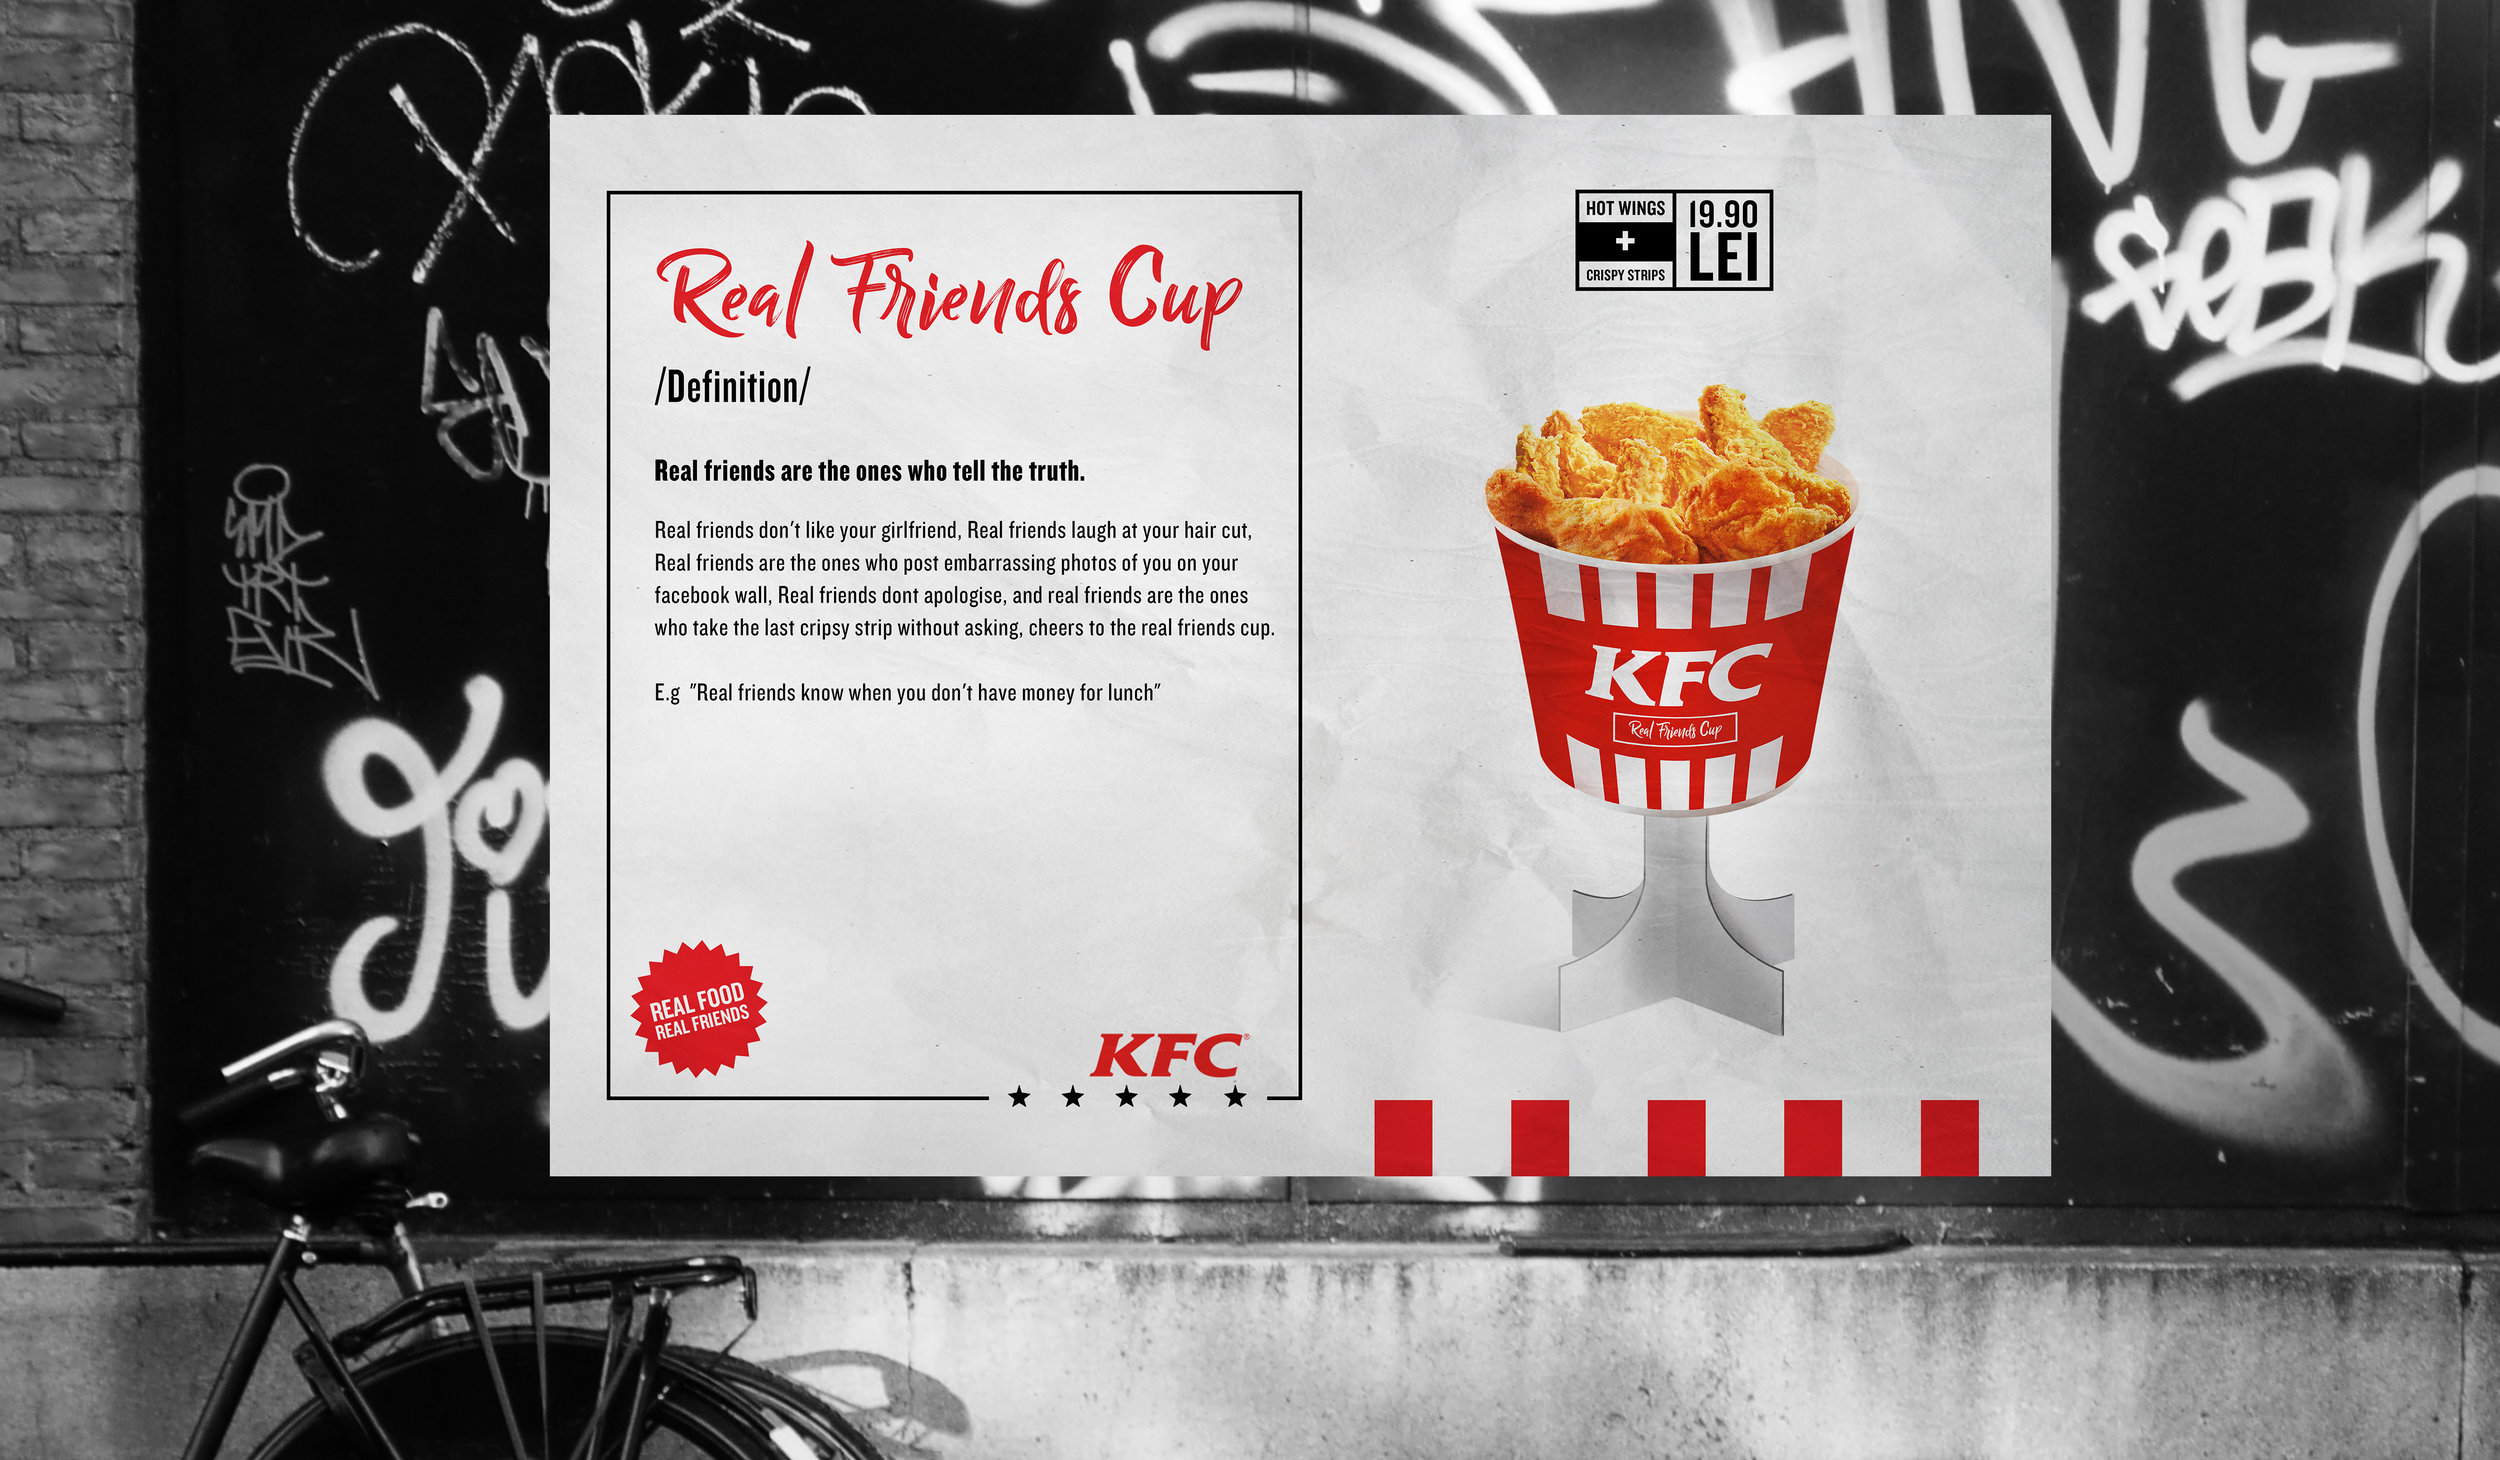 kfc-mock-up-sqaurespace.jpg-n].jpg